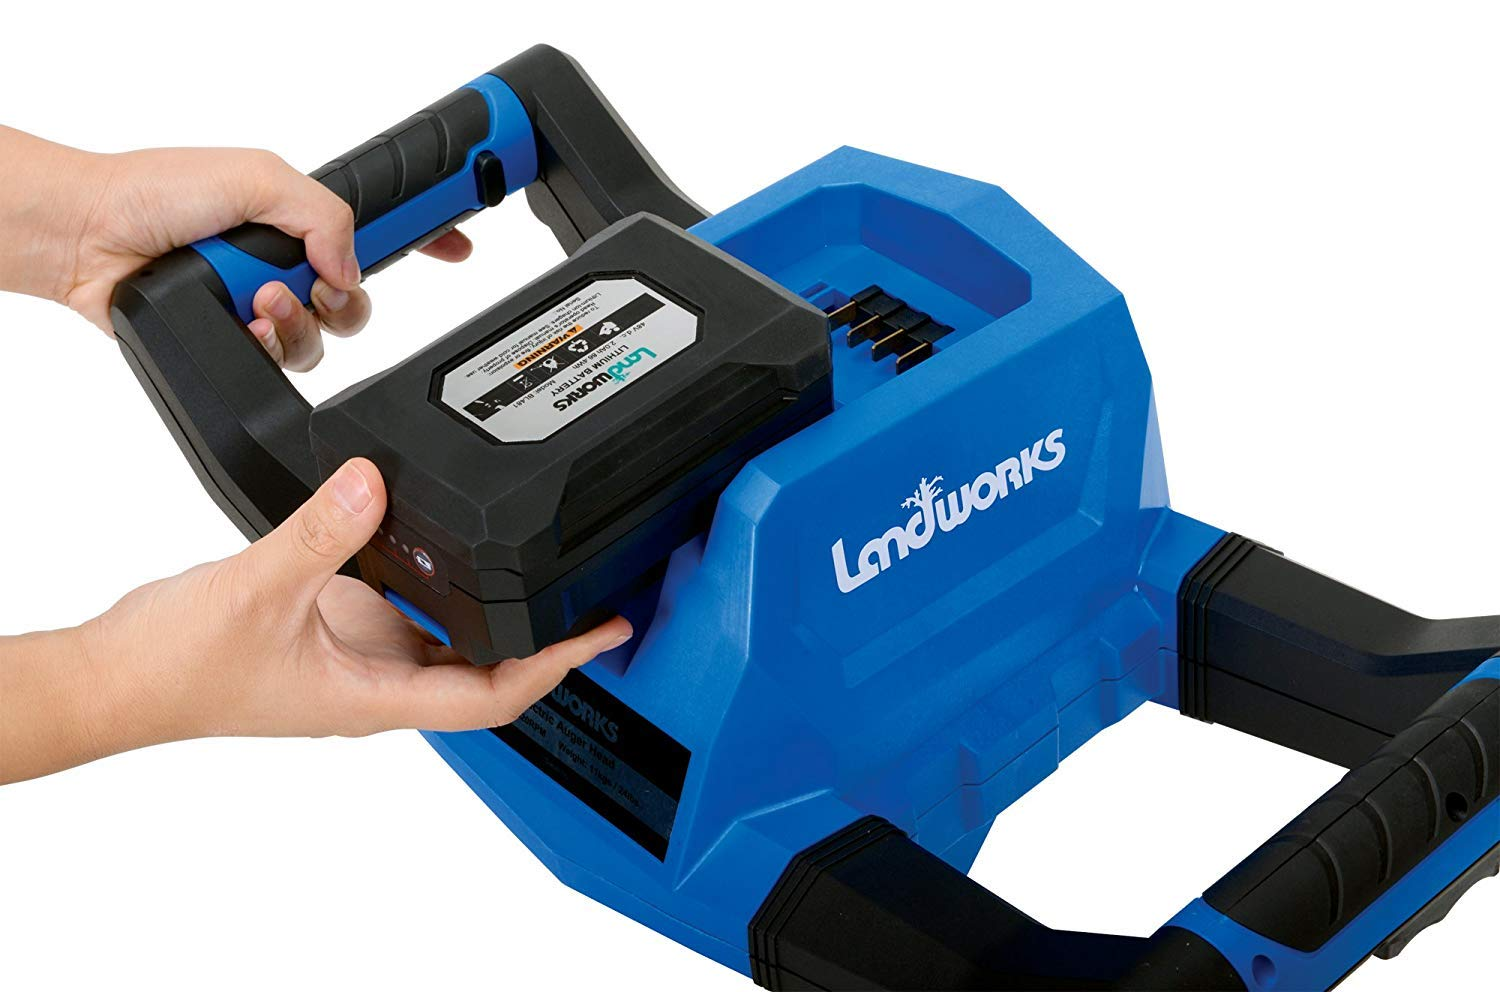 Landworks Heavy Duty Pro Lithium Ion Battery Charger 100-240V AC 50//60Hz 2.5A Both NOT Included Charger ONLY for Landworks 2Ah//4Ah Batteries to Power Landworks 48V Earth//Ice Auger Power Head